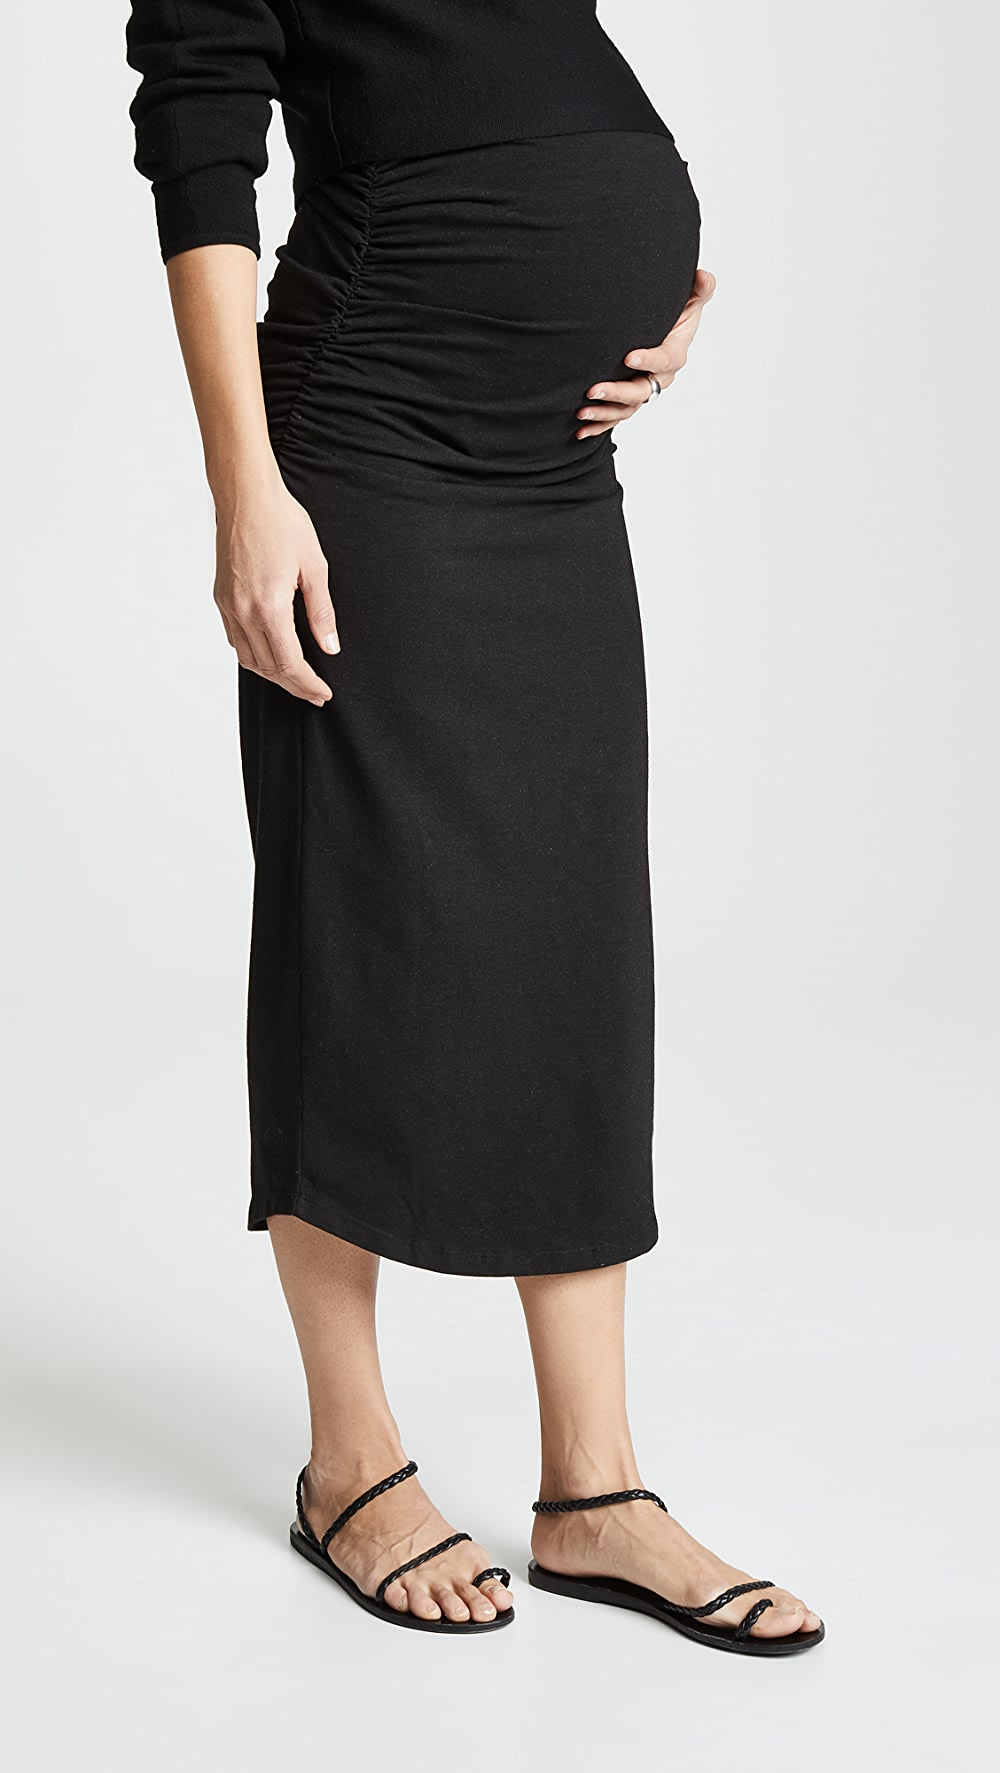 Reasonable Monrow - Maternity Skirt Fast Color